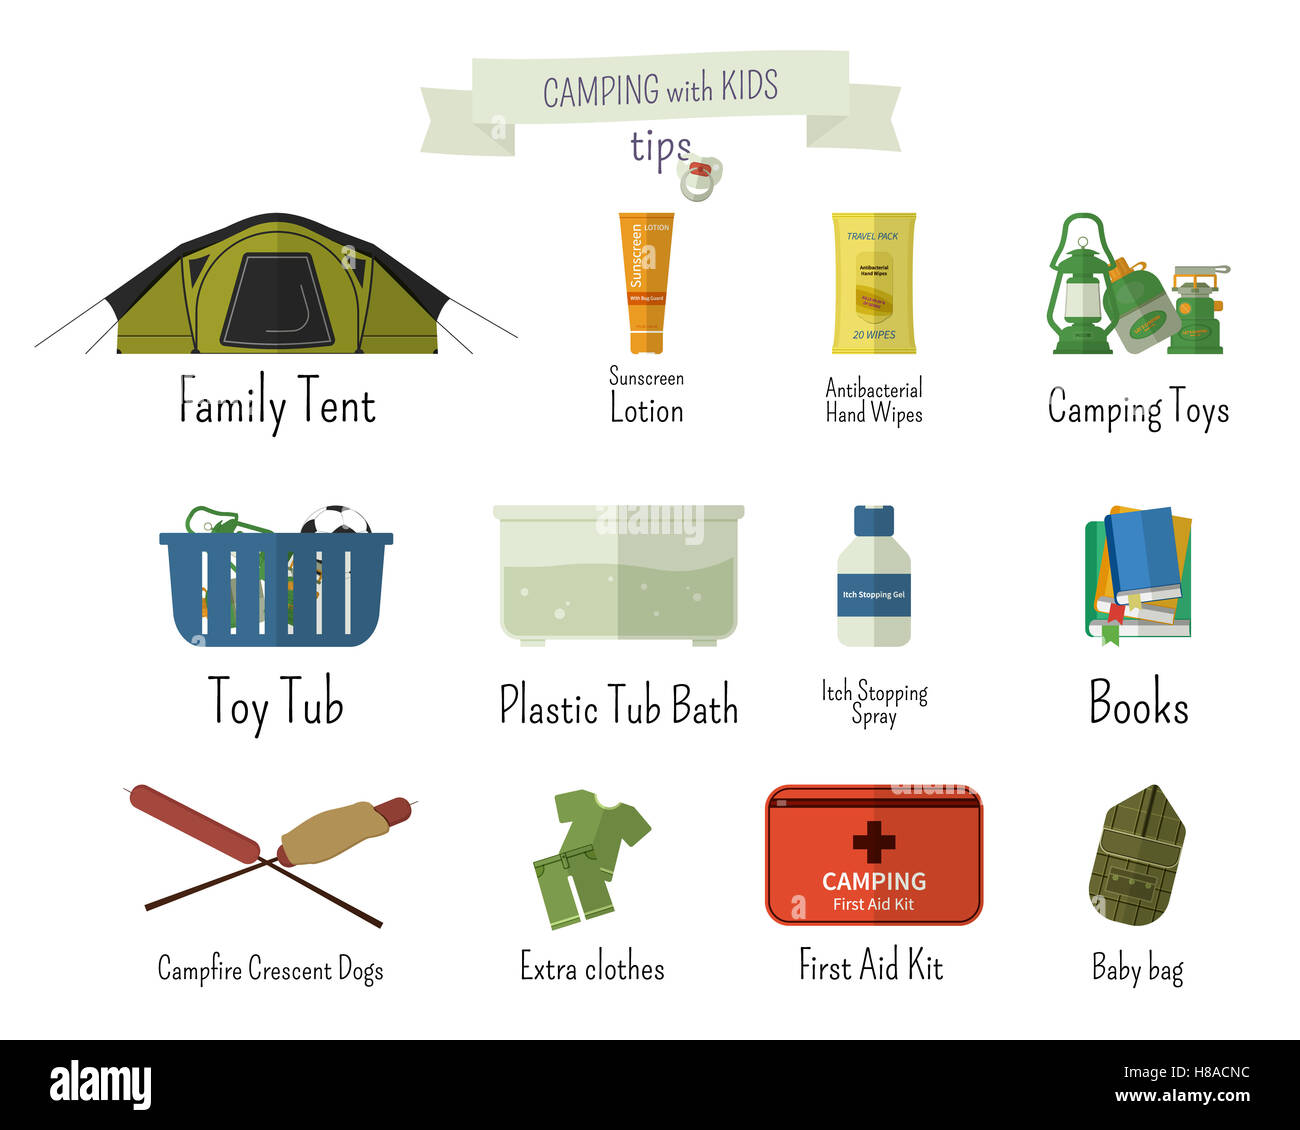 Camping With Kids Tips Set Of Flat Adventure Traveling Elements